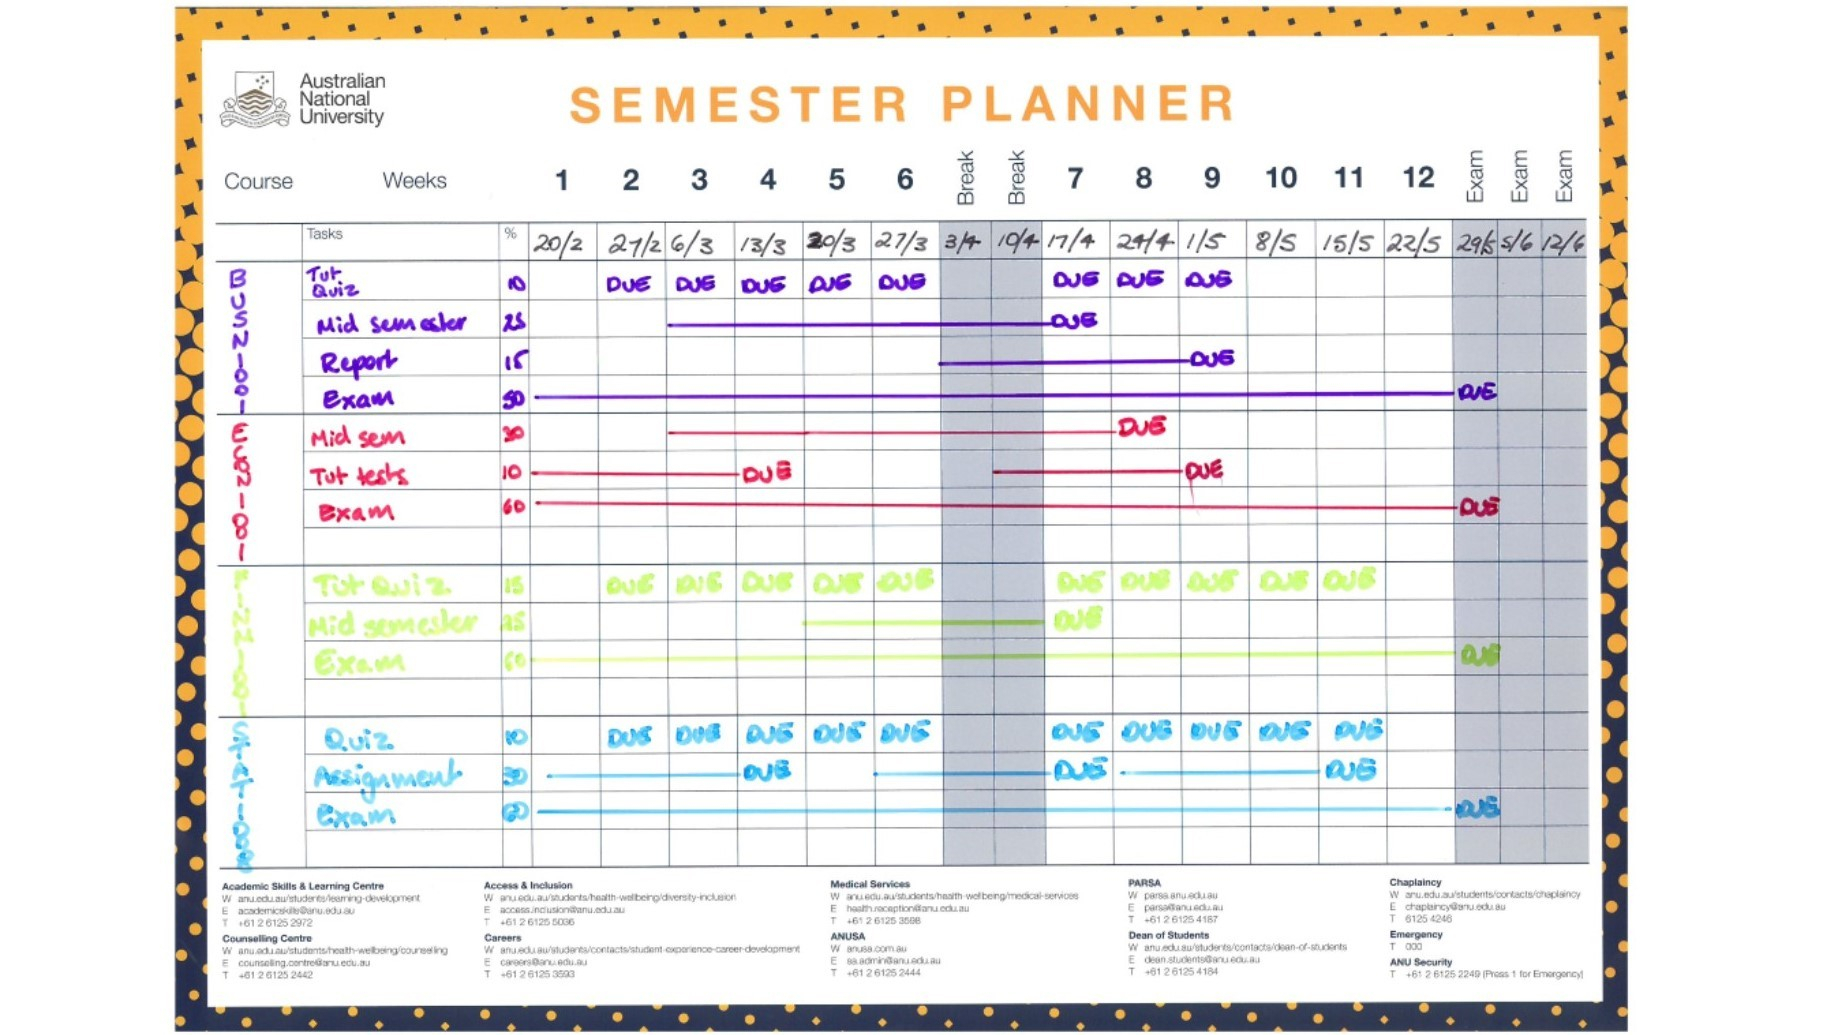 027 Yearly Plan Template For Teachers Unit Stunning Templates in Yearly Planning Calendar Template For -2019